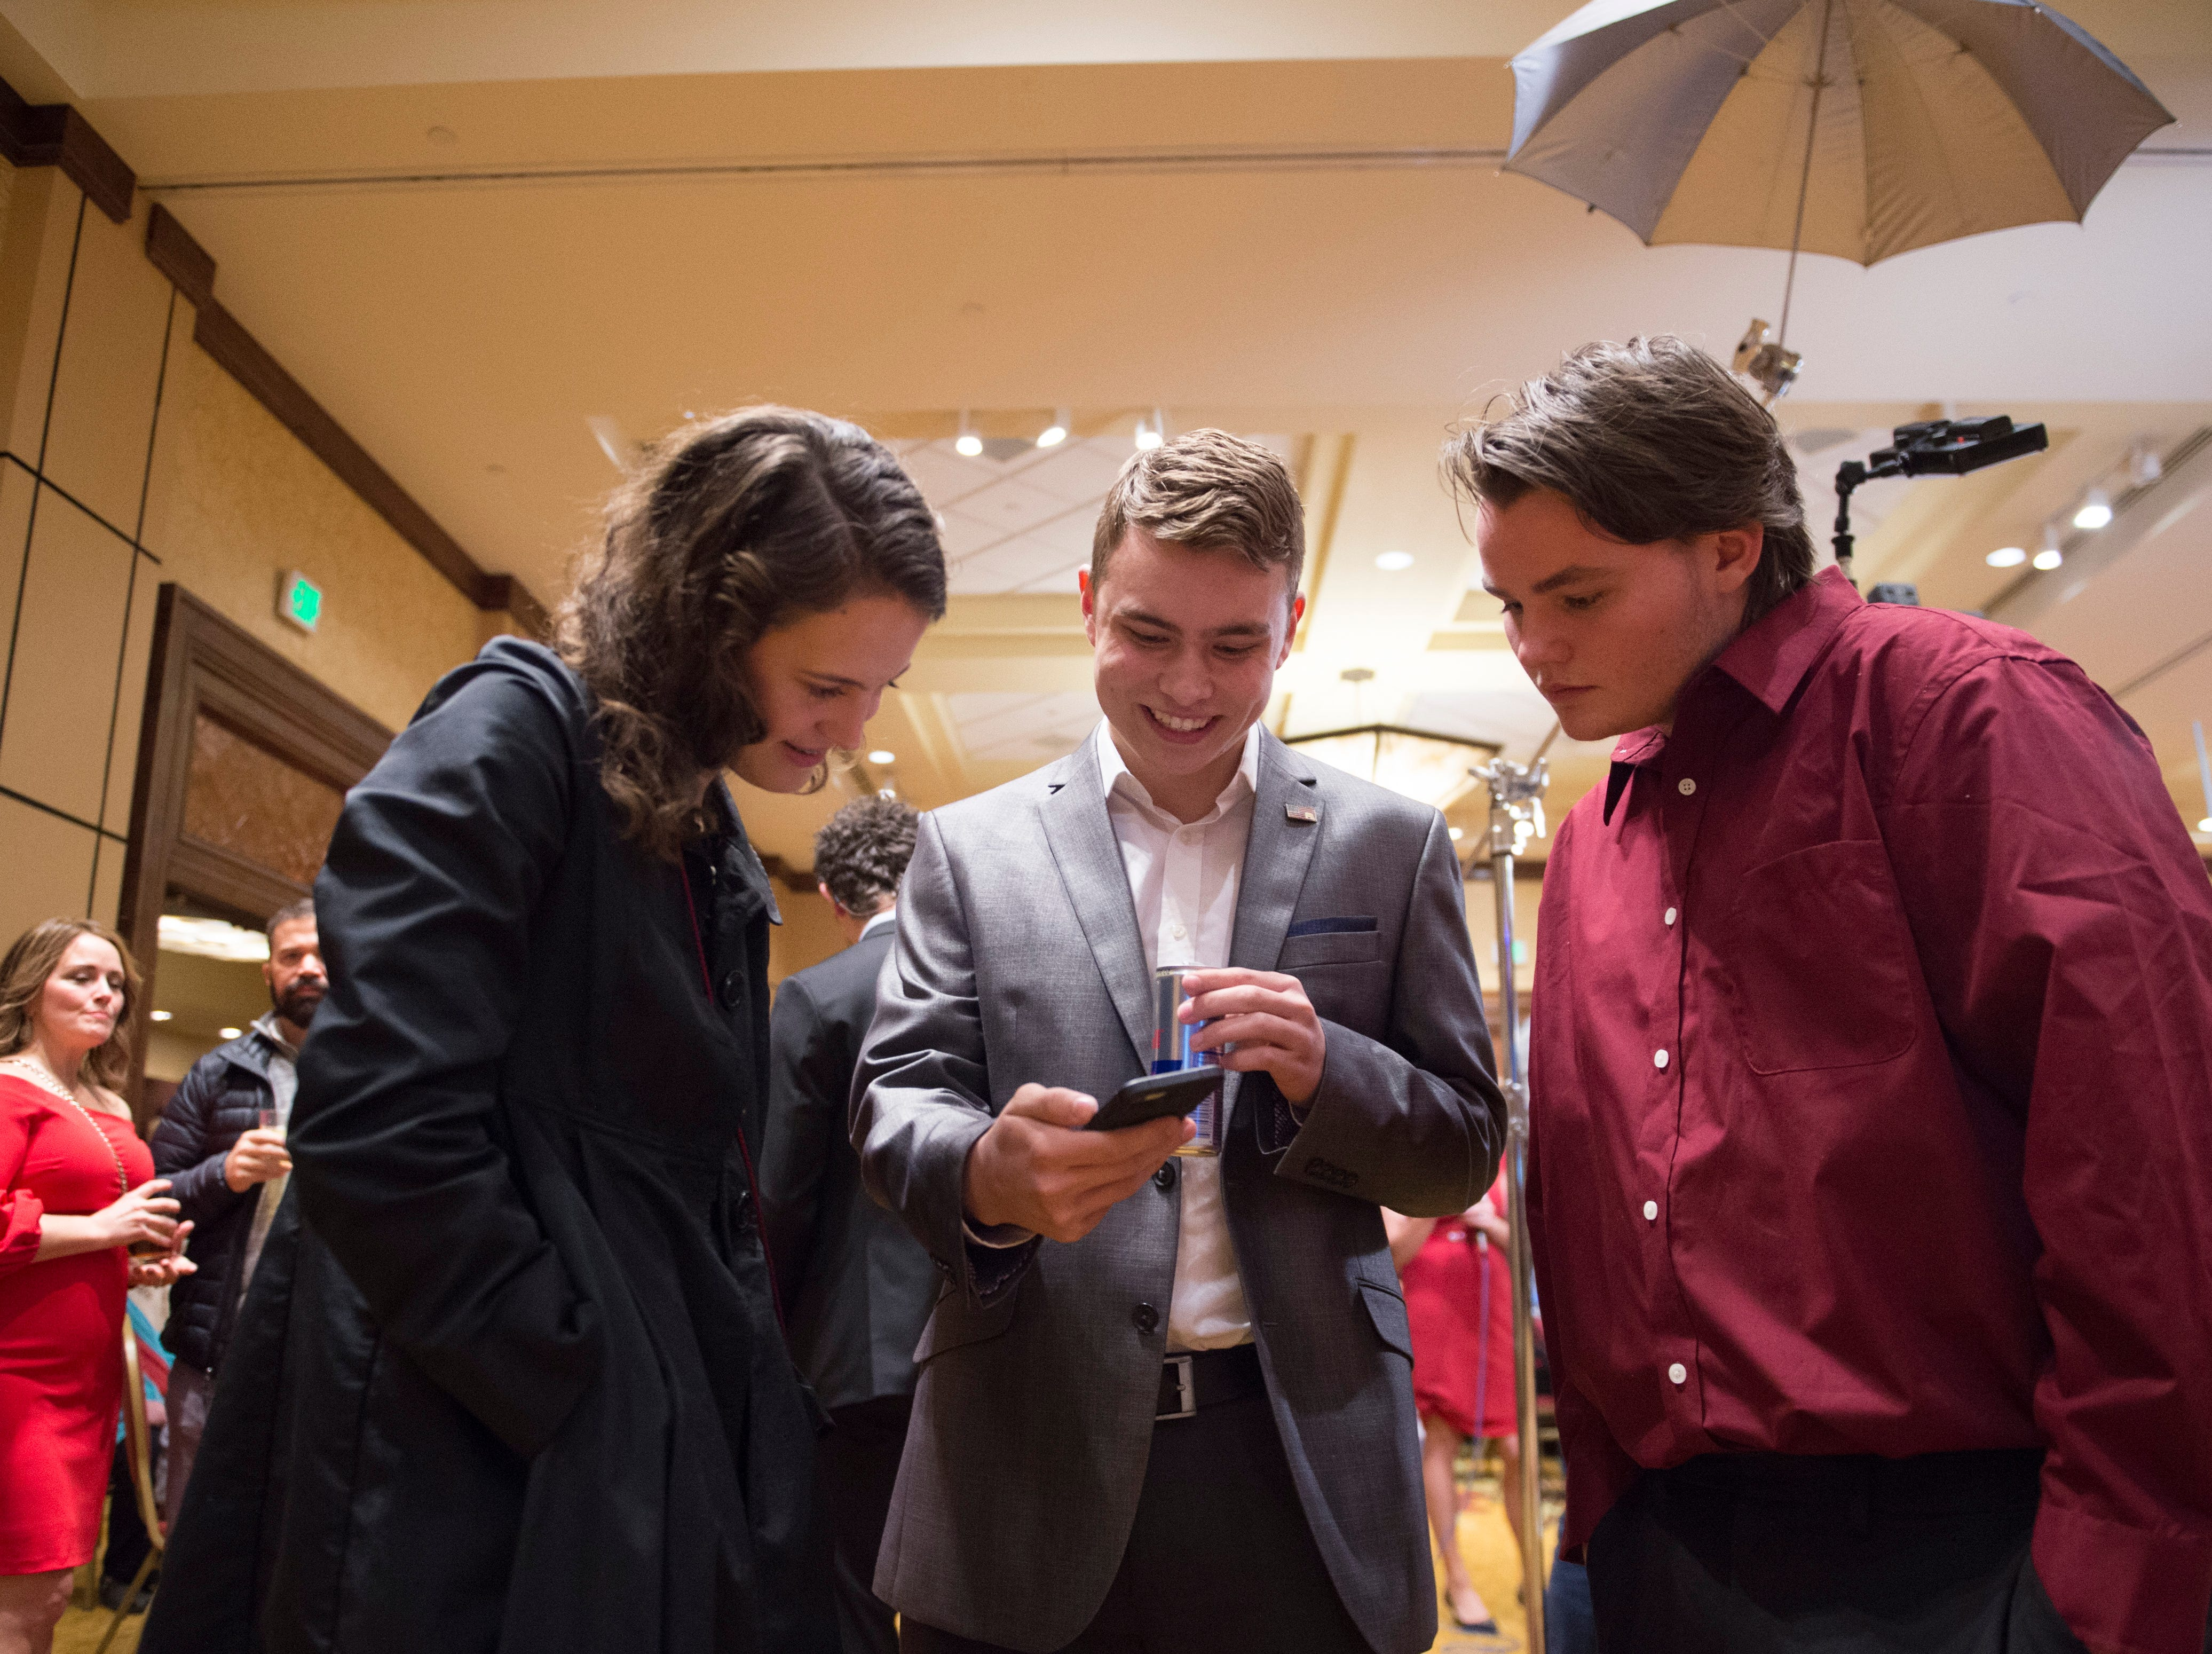 Sophia Schwarz, Aidan Duncan and Kameron Fischer look for election results during a Colorado GOP watch party at the Denver Marriott South at Park Meadows in Lone Tree on Election Day, Tuesday, November 6, 2018.